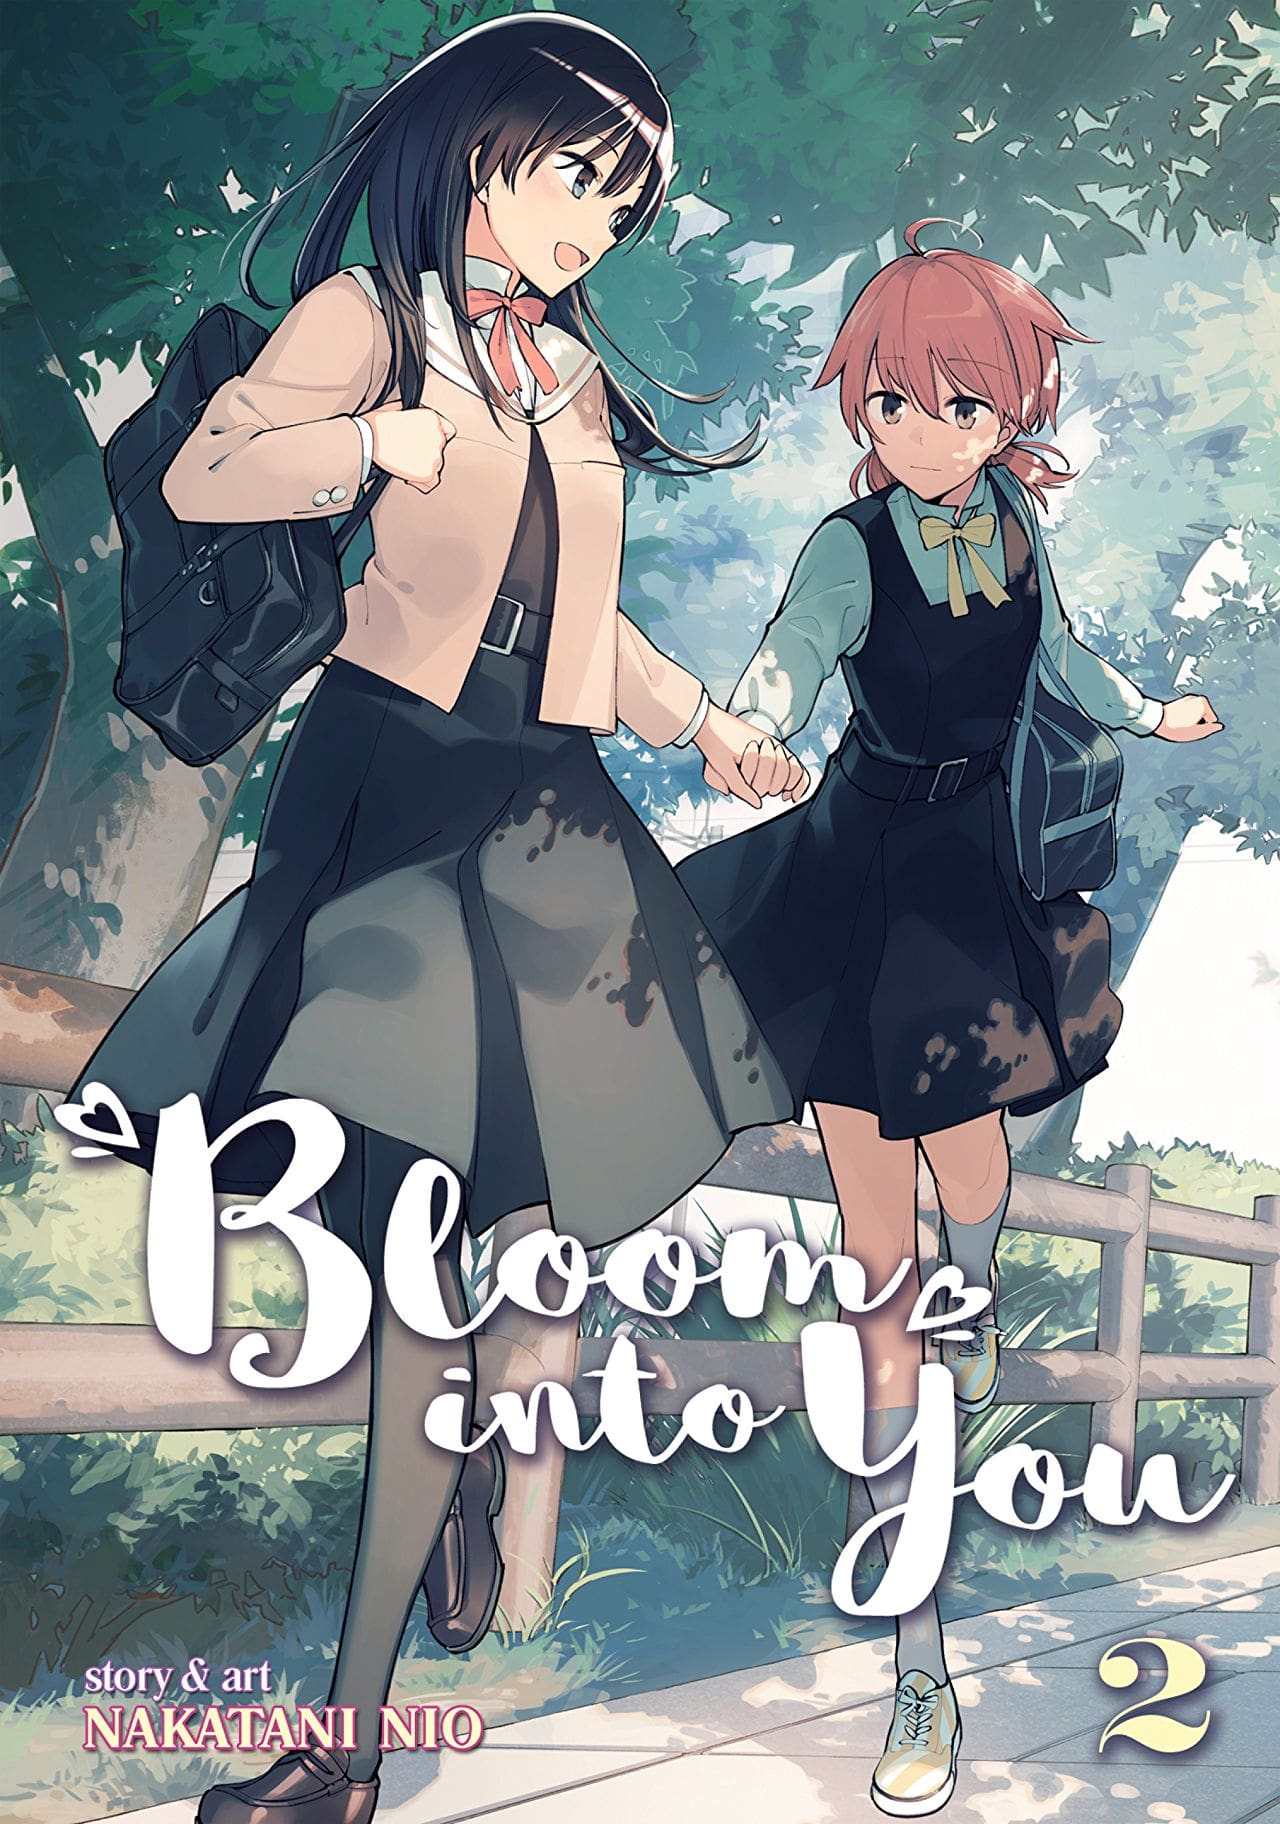 Bloom Into You has been getting positive attention lately thanks to its anime adaptation. But what about the original manga? When I reviewed the first volume I found it very enjoyable, thanks largely to creator Nakatani Nio's lovely art and focus on the characters' interpersonal relationships. Vol. 2, published by Seven Seas Entertainment, picks up after the results of the student council election. Nanami tries to revive the annual school play tradition much to Yuu's chagrin, and some of the supporting characters become more prominent. How does this installment compare to the series' debut? Is it good?